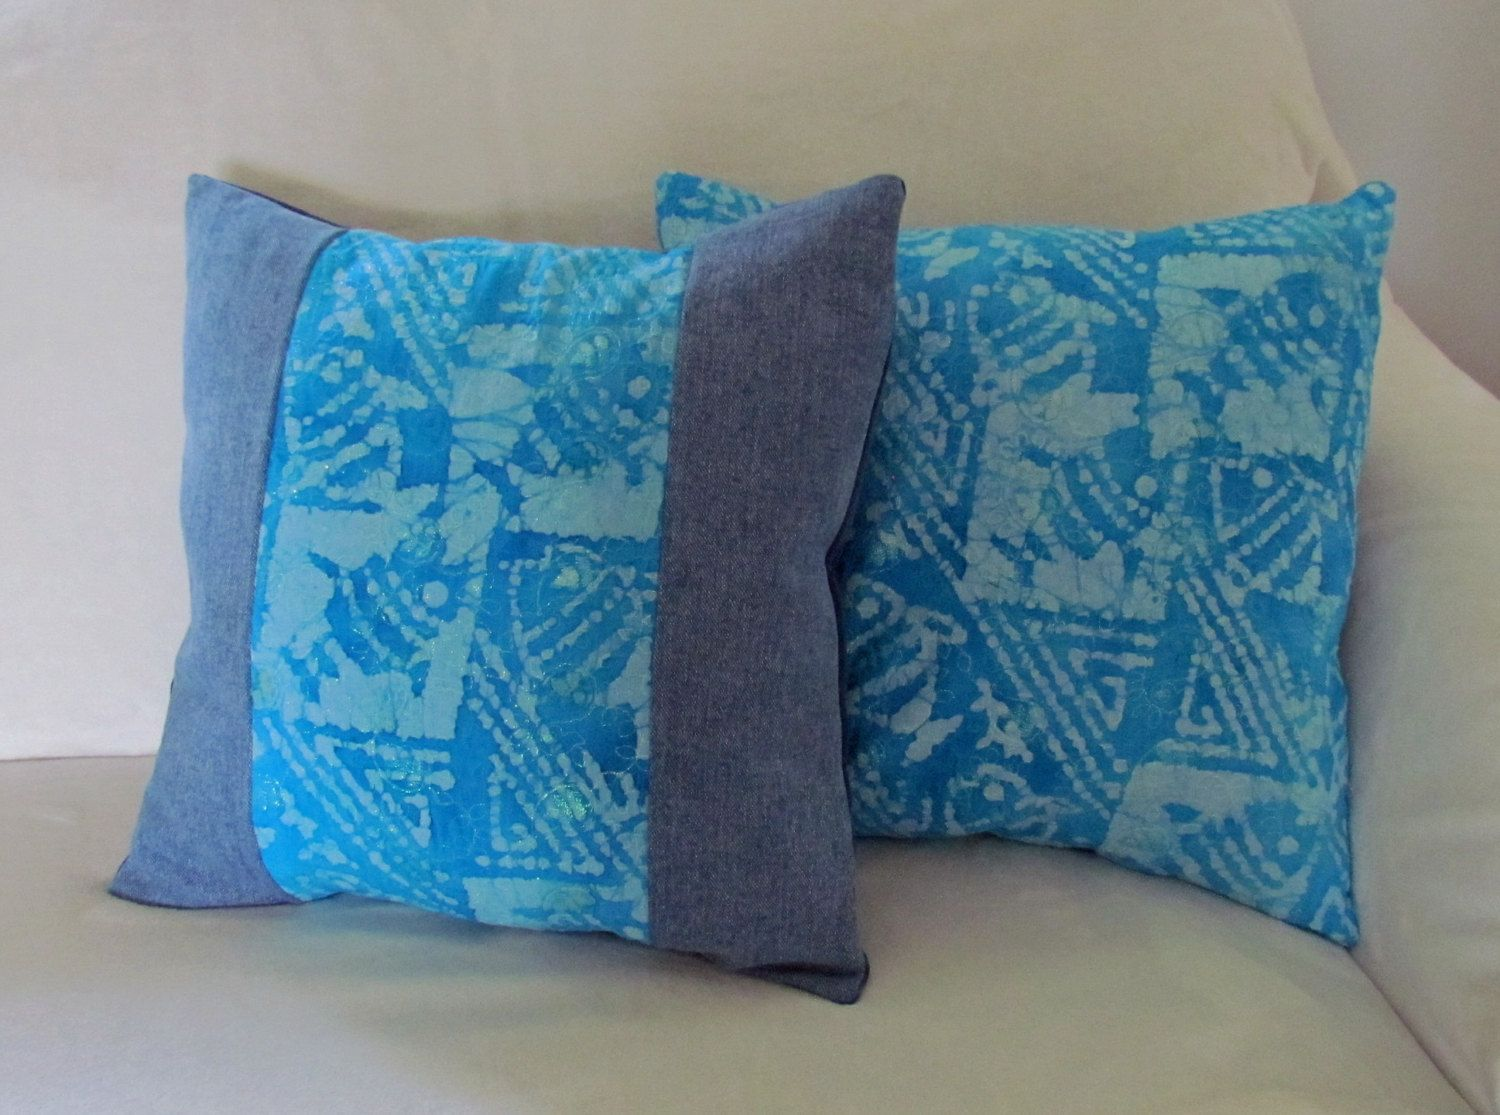 Blue Cushion Cover, Decorative Pillow Cover, Throw Pillows, Accent ...